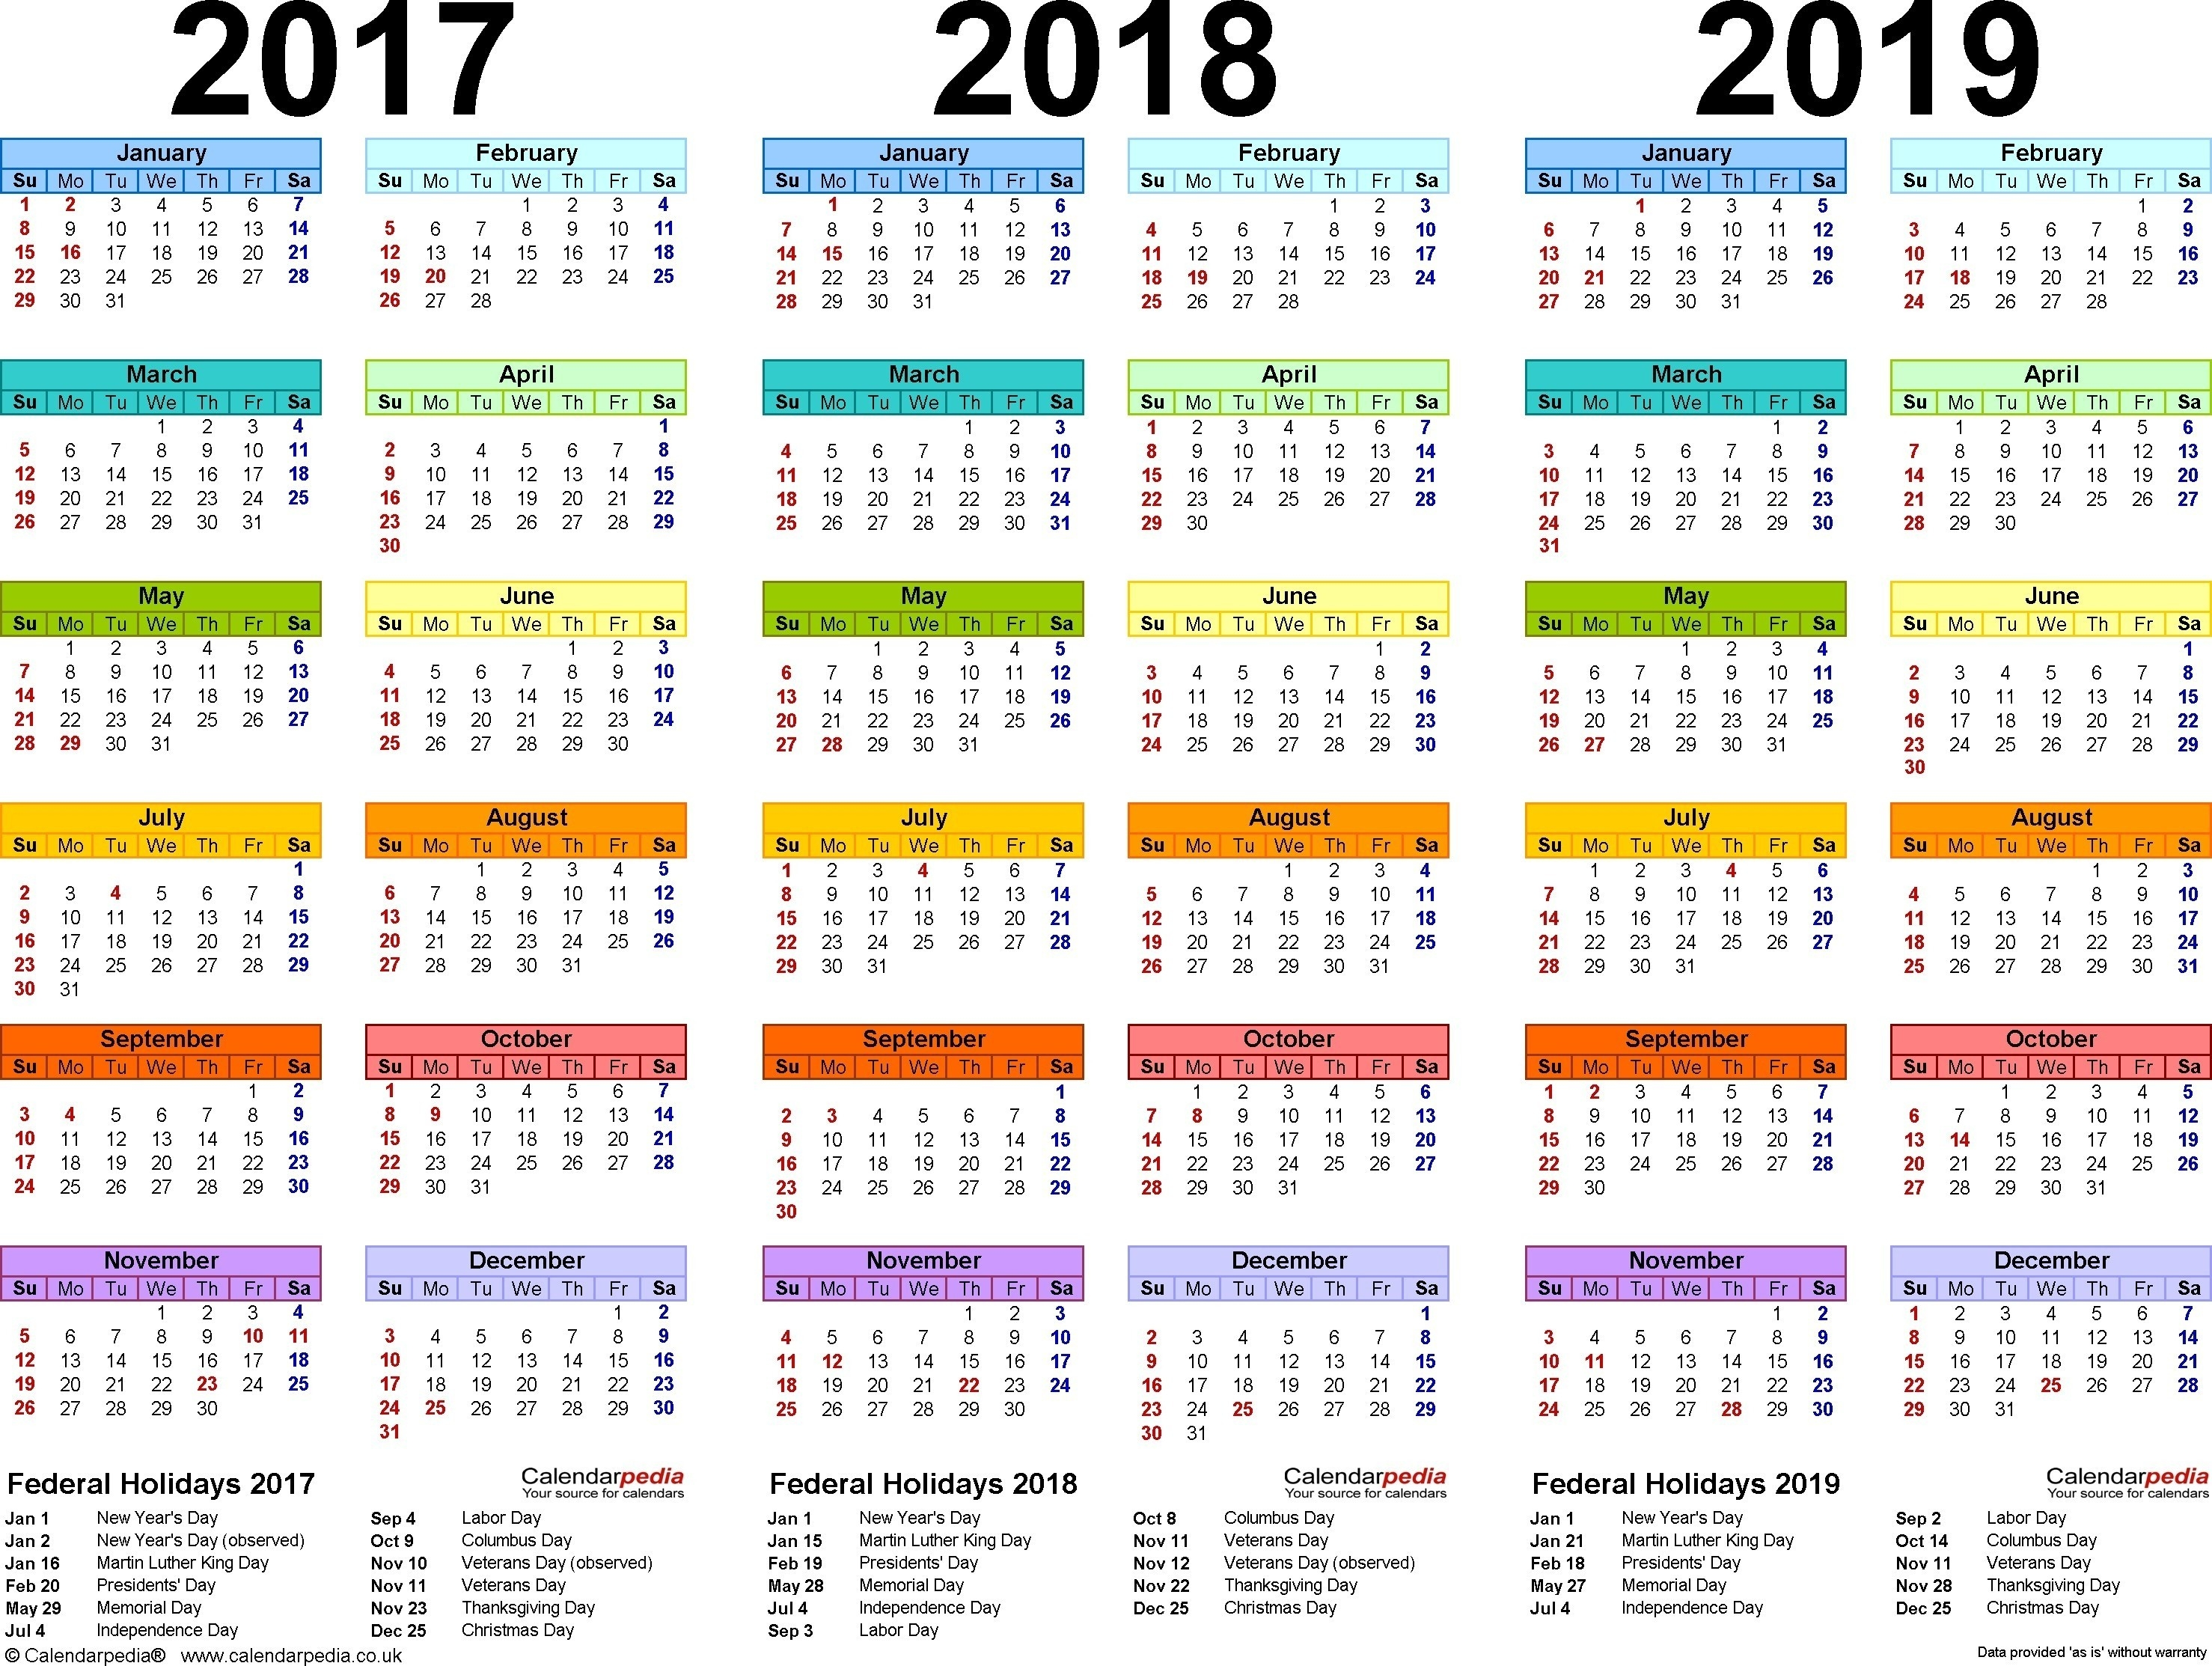 Depo Provera Calendar 2019 Printable Download For Free  Depo-Provera Printable Calendar 2020 Pdf